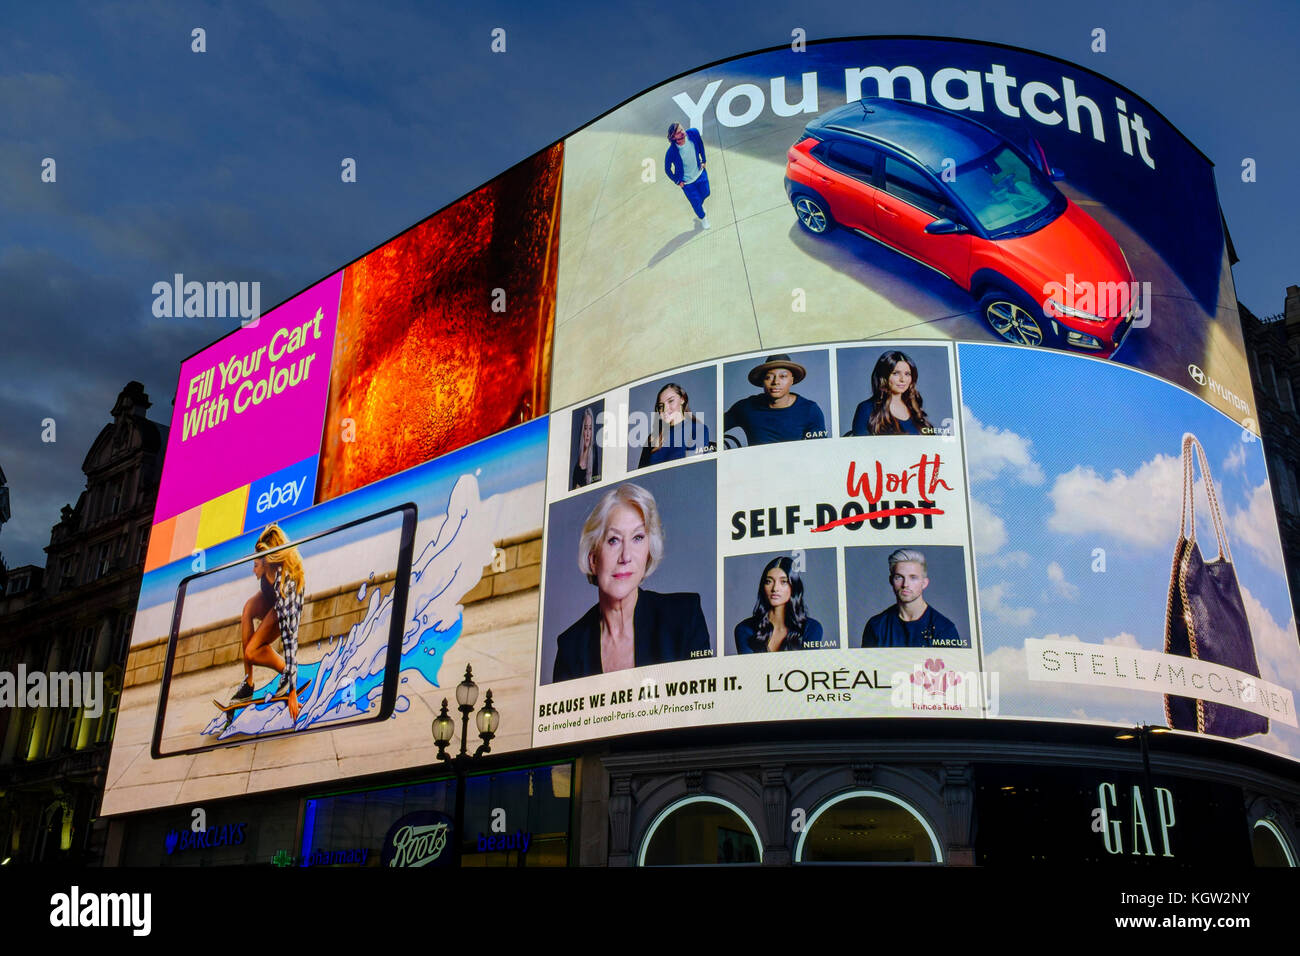 Piccadilly Circus new electronic advertising screens launched on 27th October 2017 - Stock Image